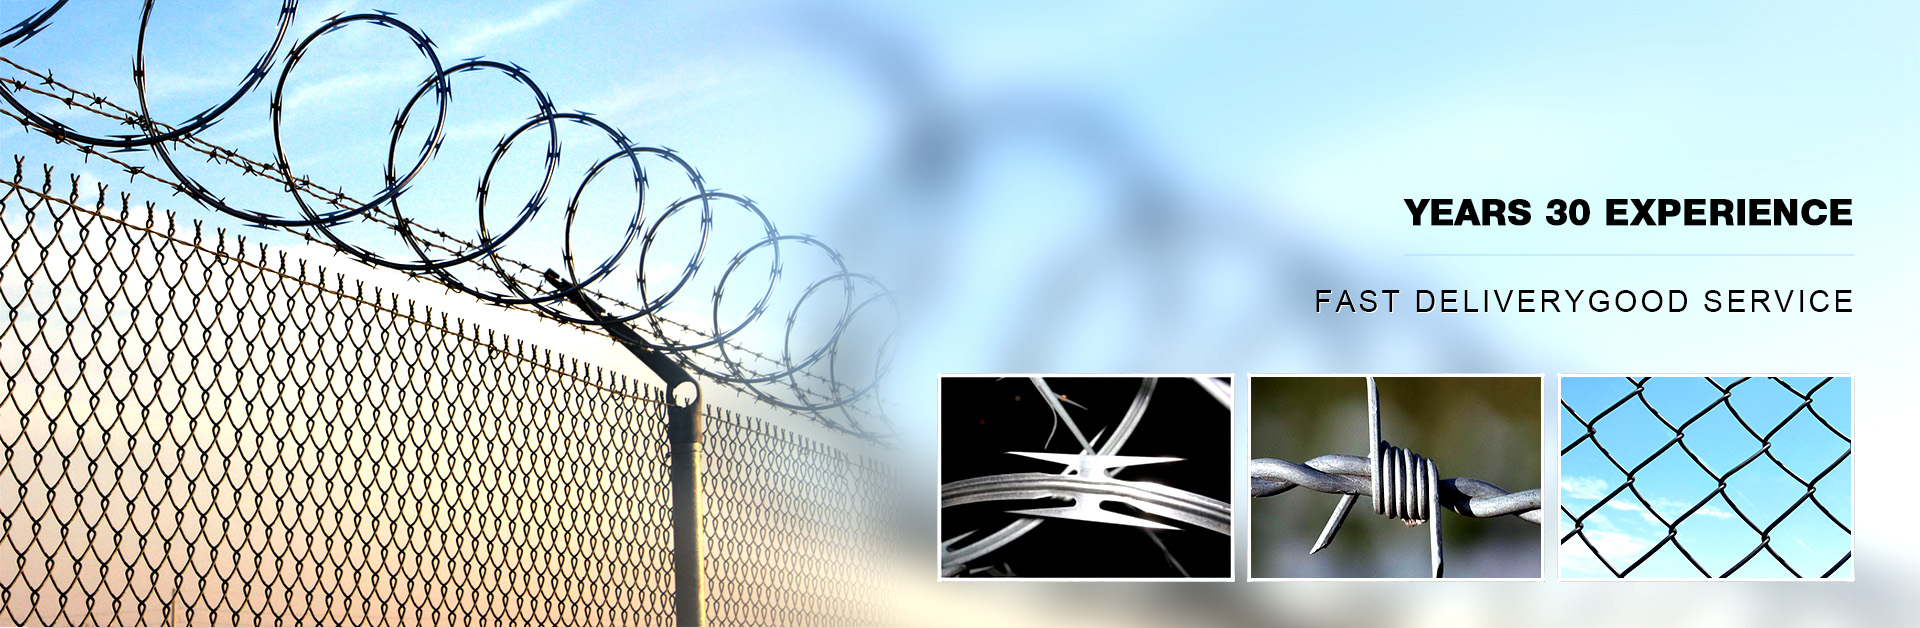 Stainless Steel Wire Mesh,Welded Wire Mesh,Chain Link Fence,Hexagonal Wire Mesh,Window Screen,Crimpe